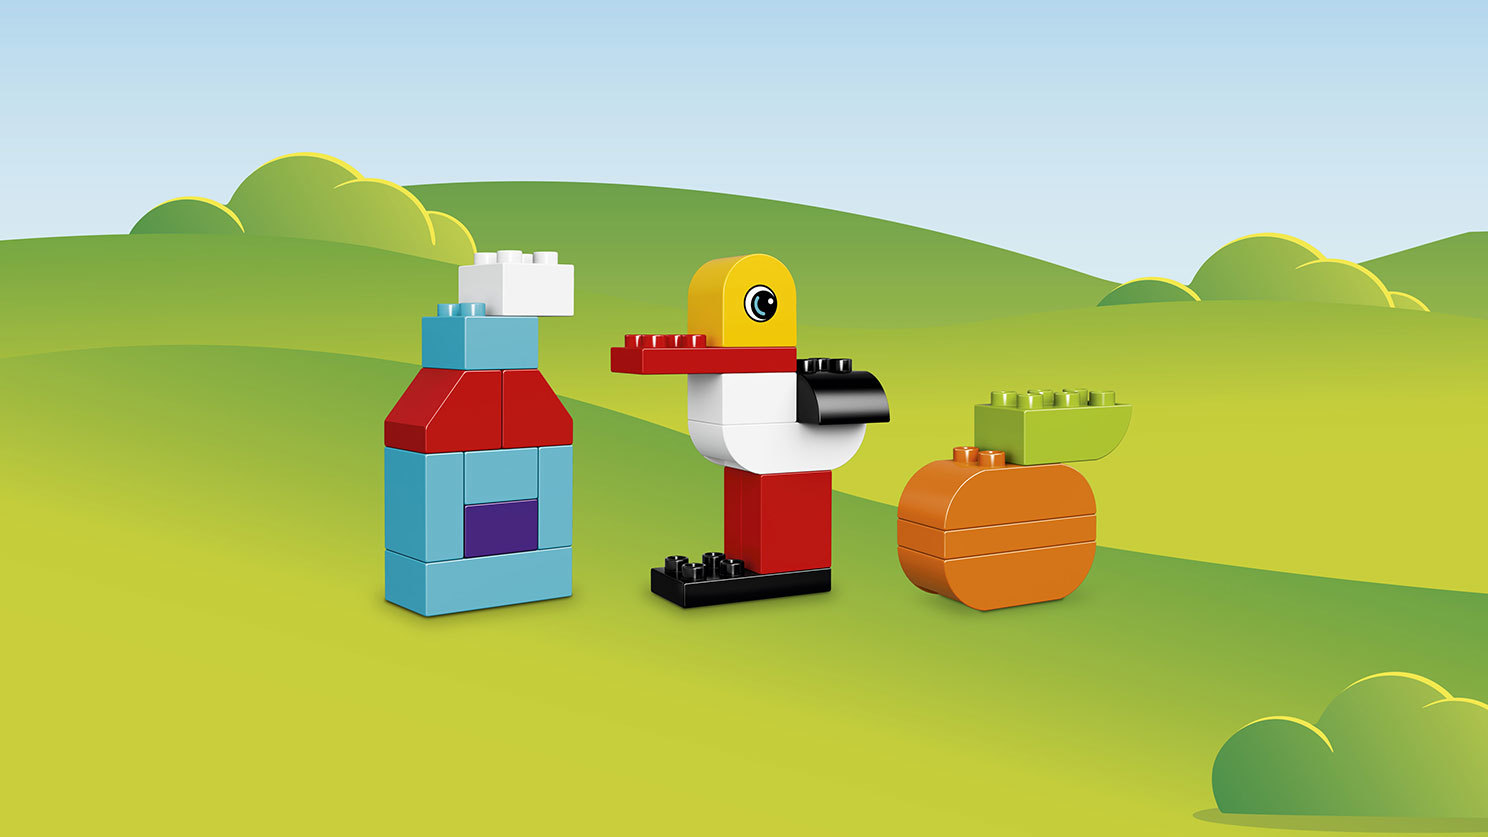 LEGO DUPLO: My First Bricks (10848) image